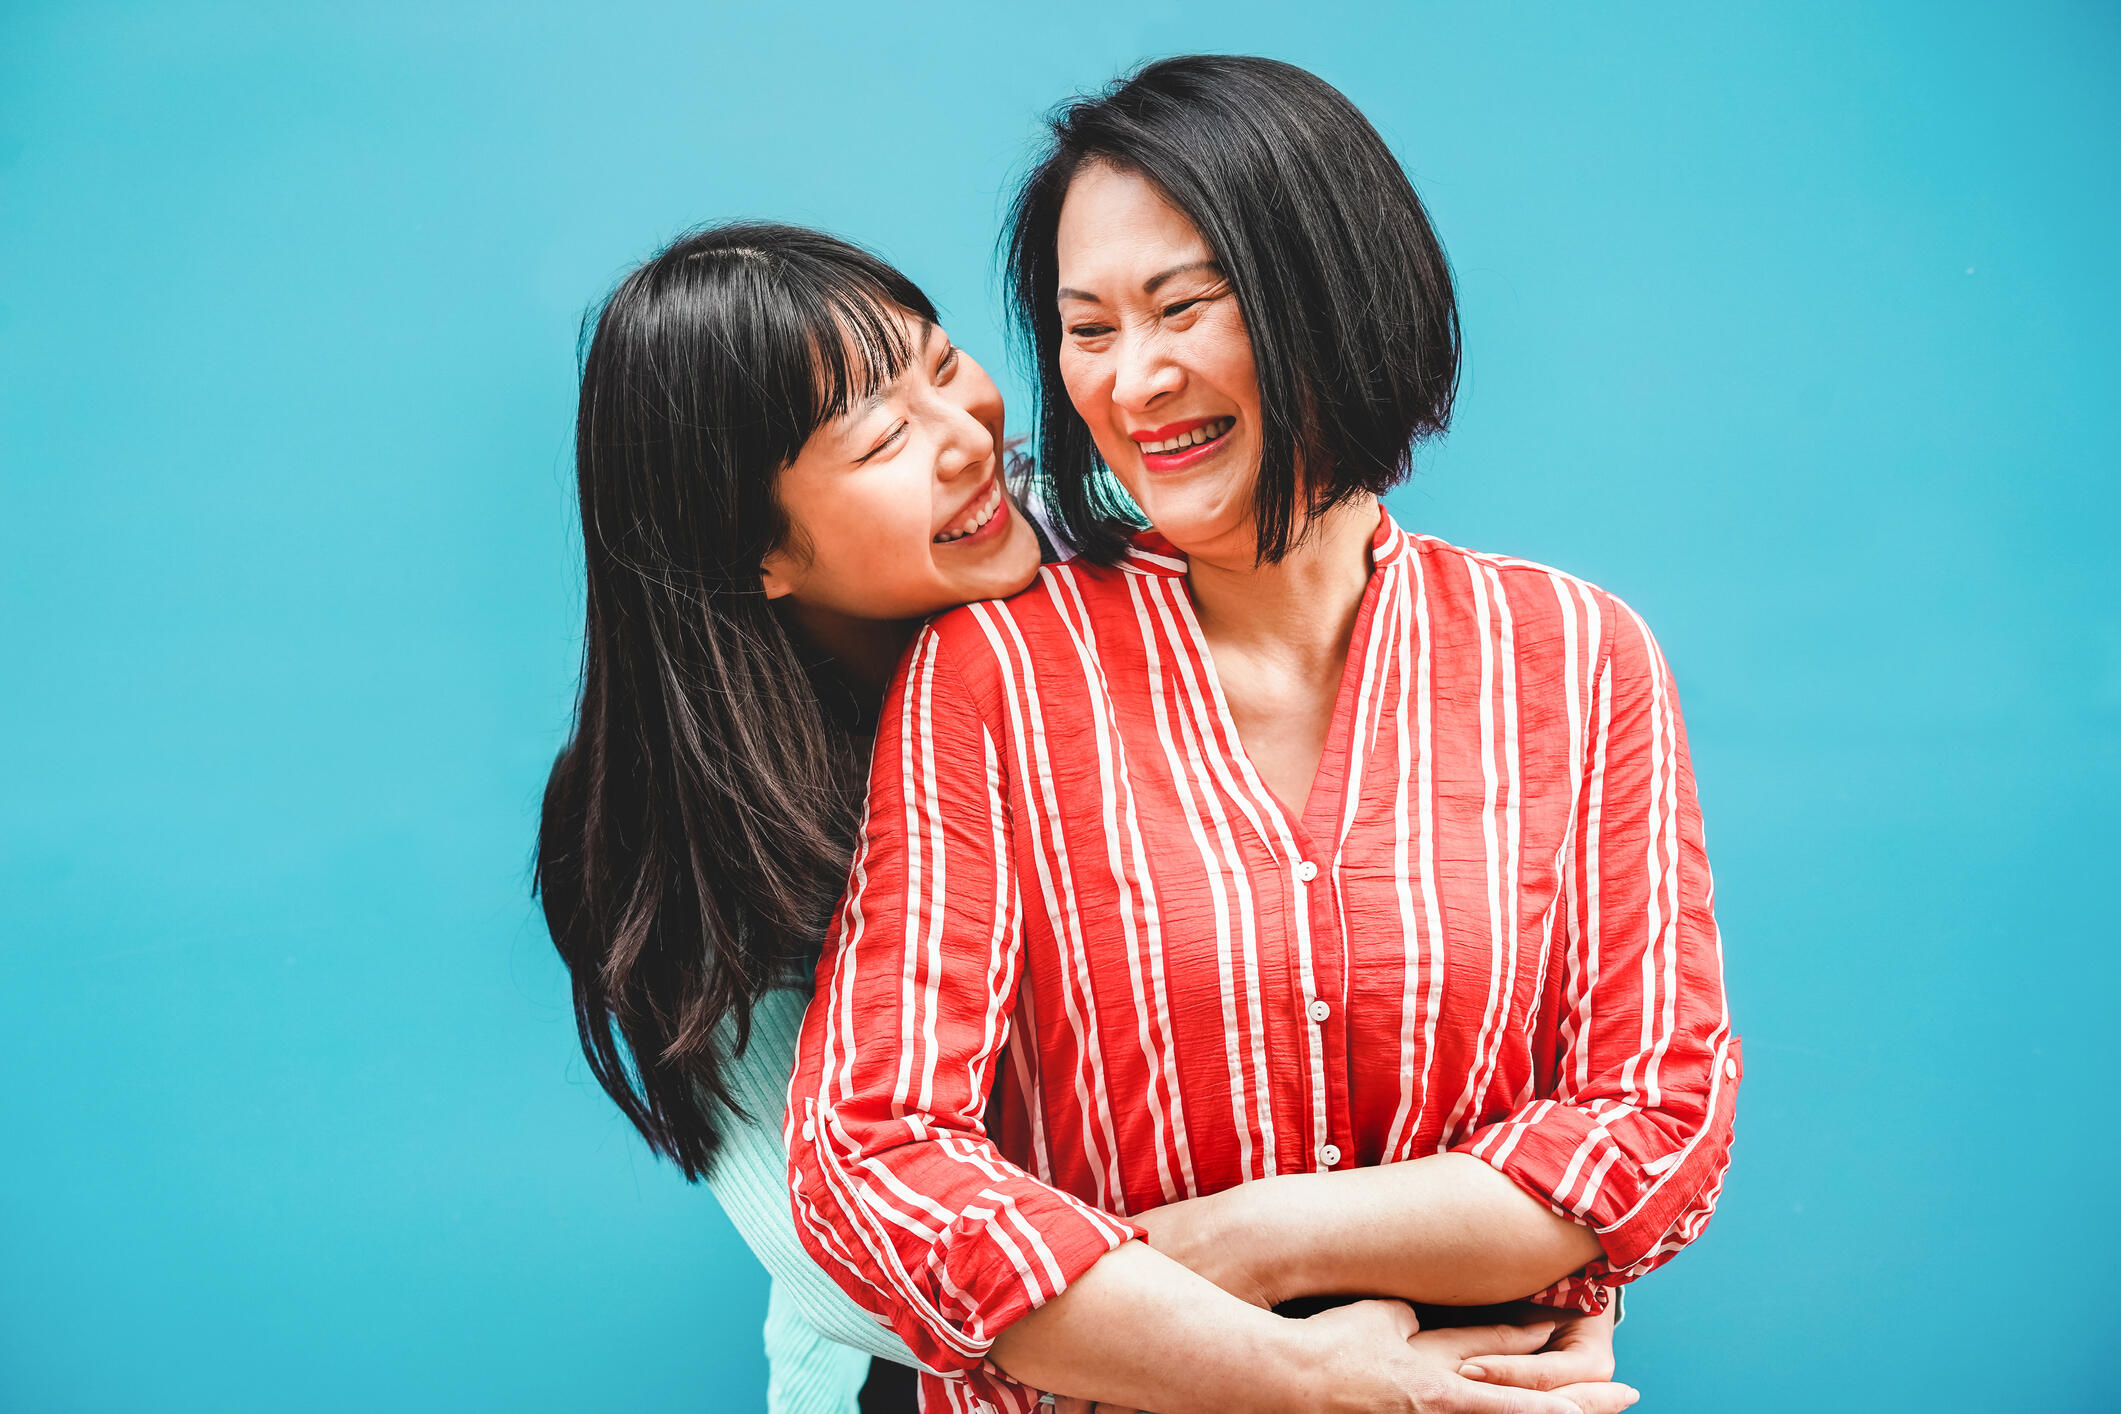 Asian mom and daughter hugging and smiling in front of a bright blue backdrop.